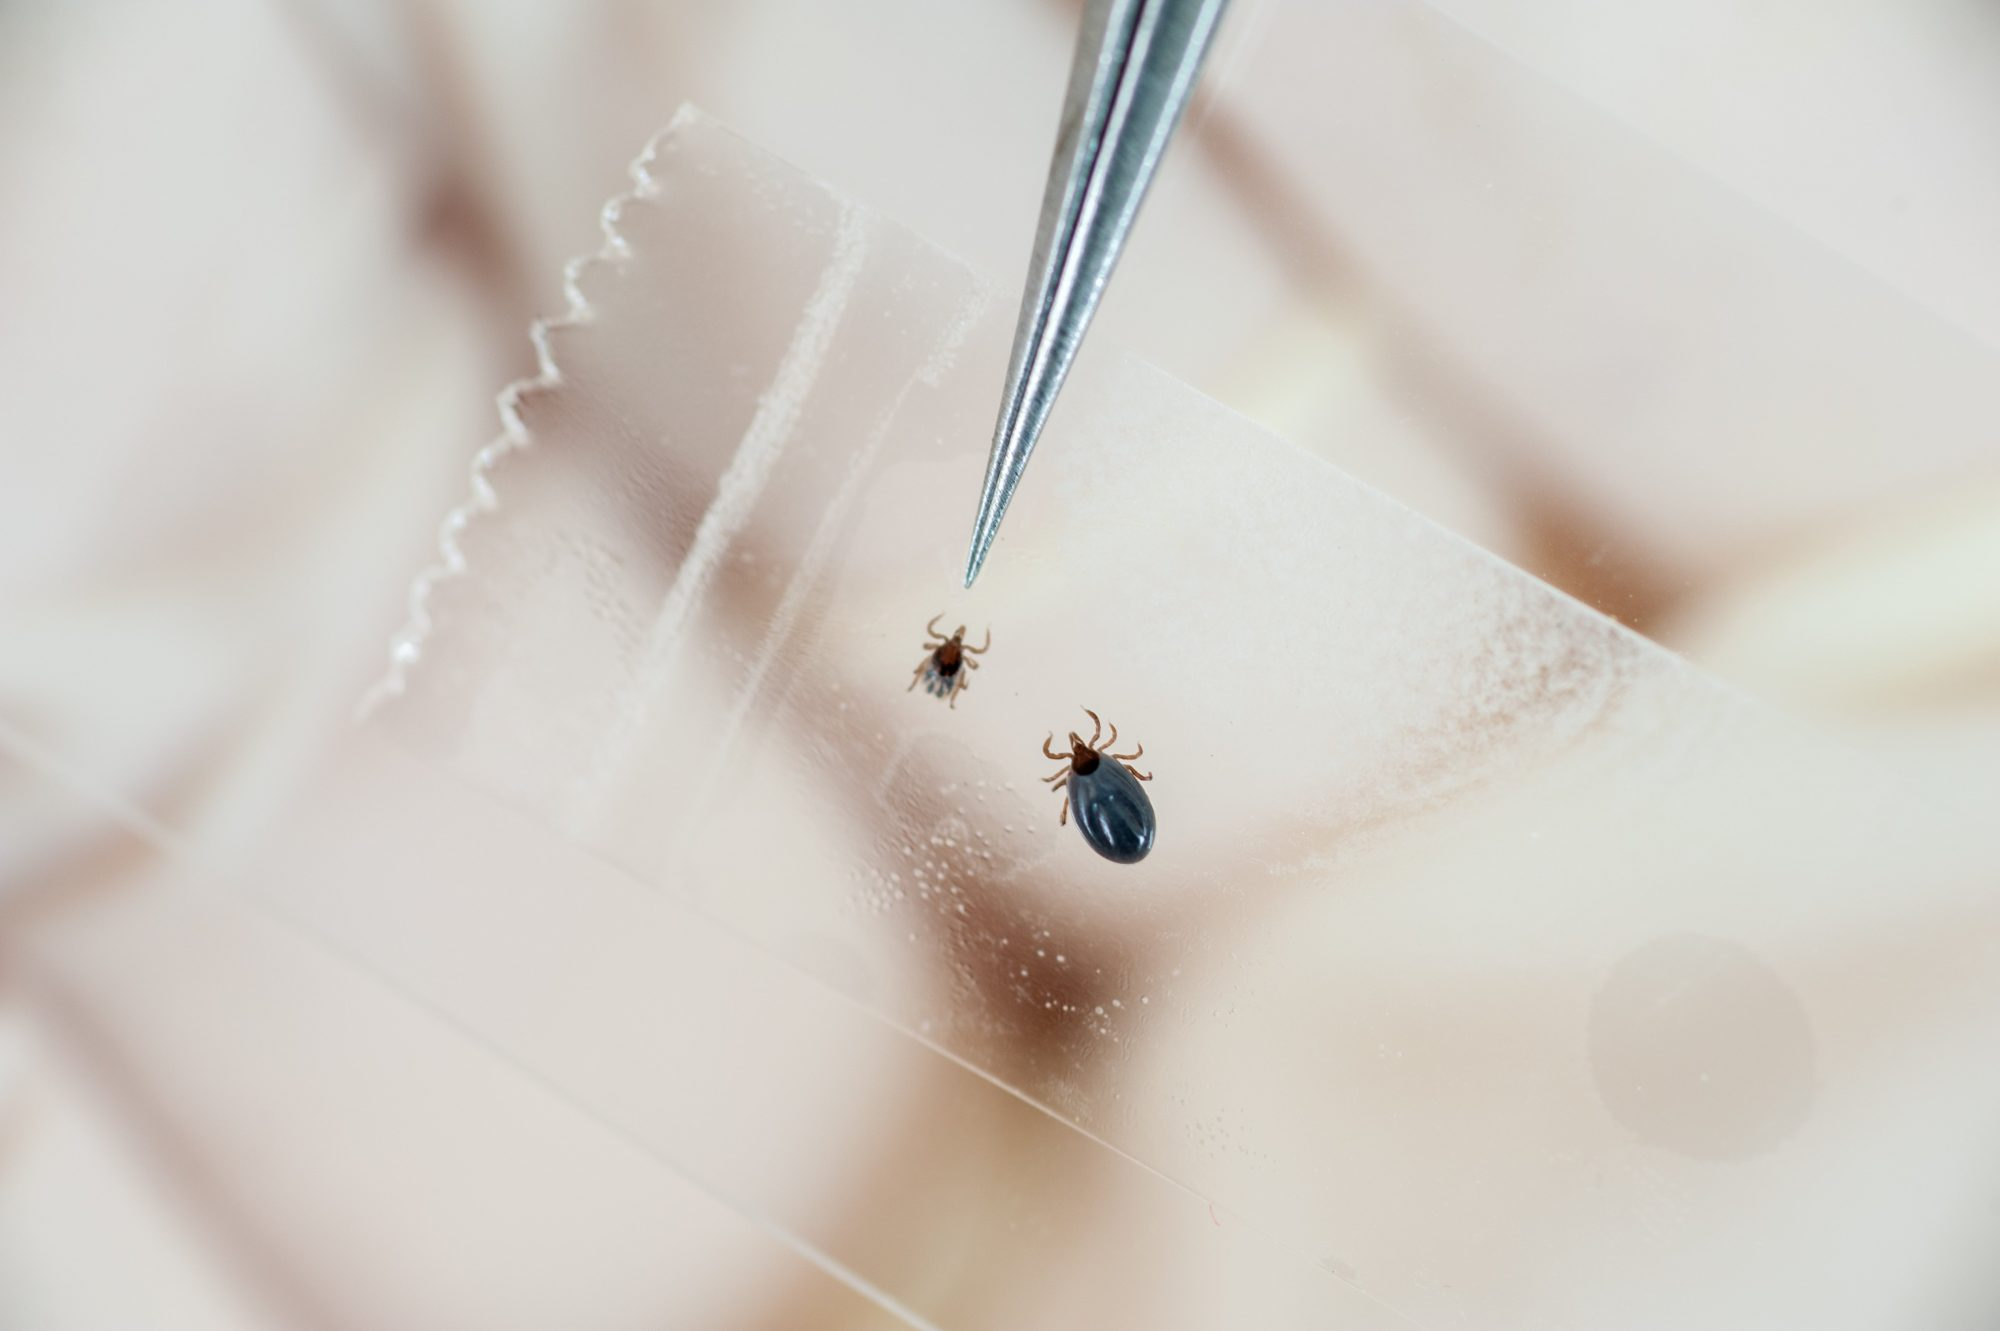 Tweezers pointing to a tick while doing Lyme disease research in College Park, Maryland, USA